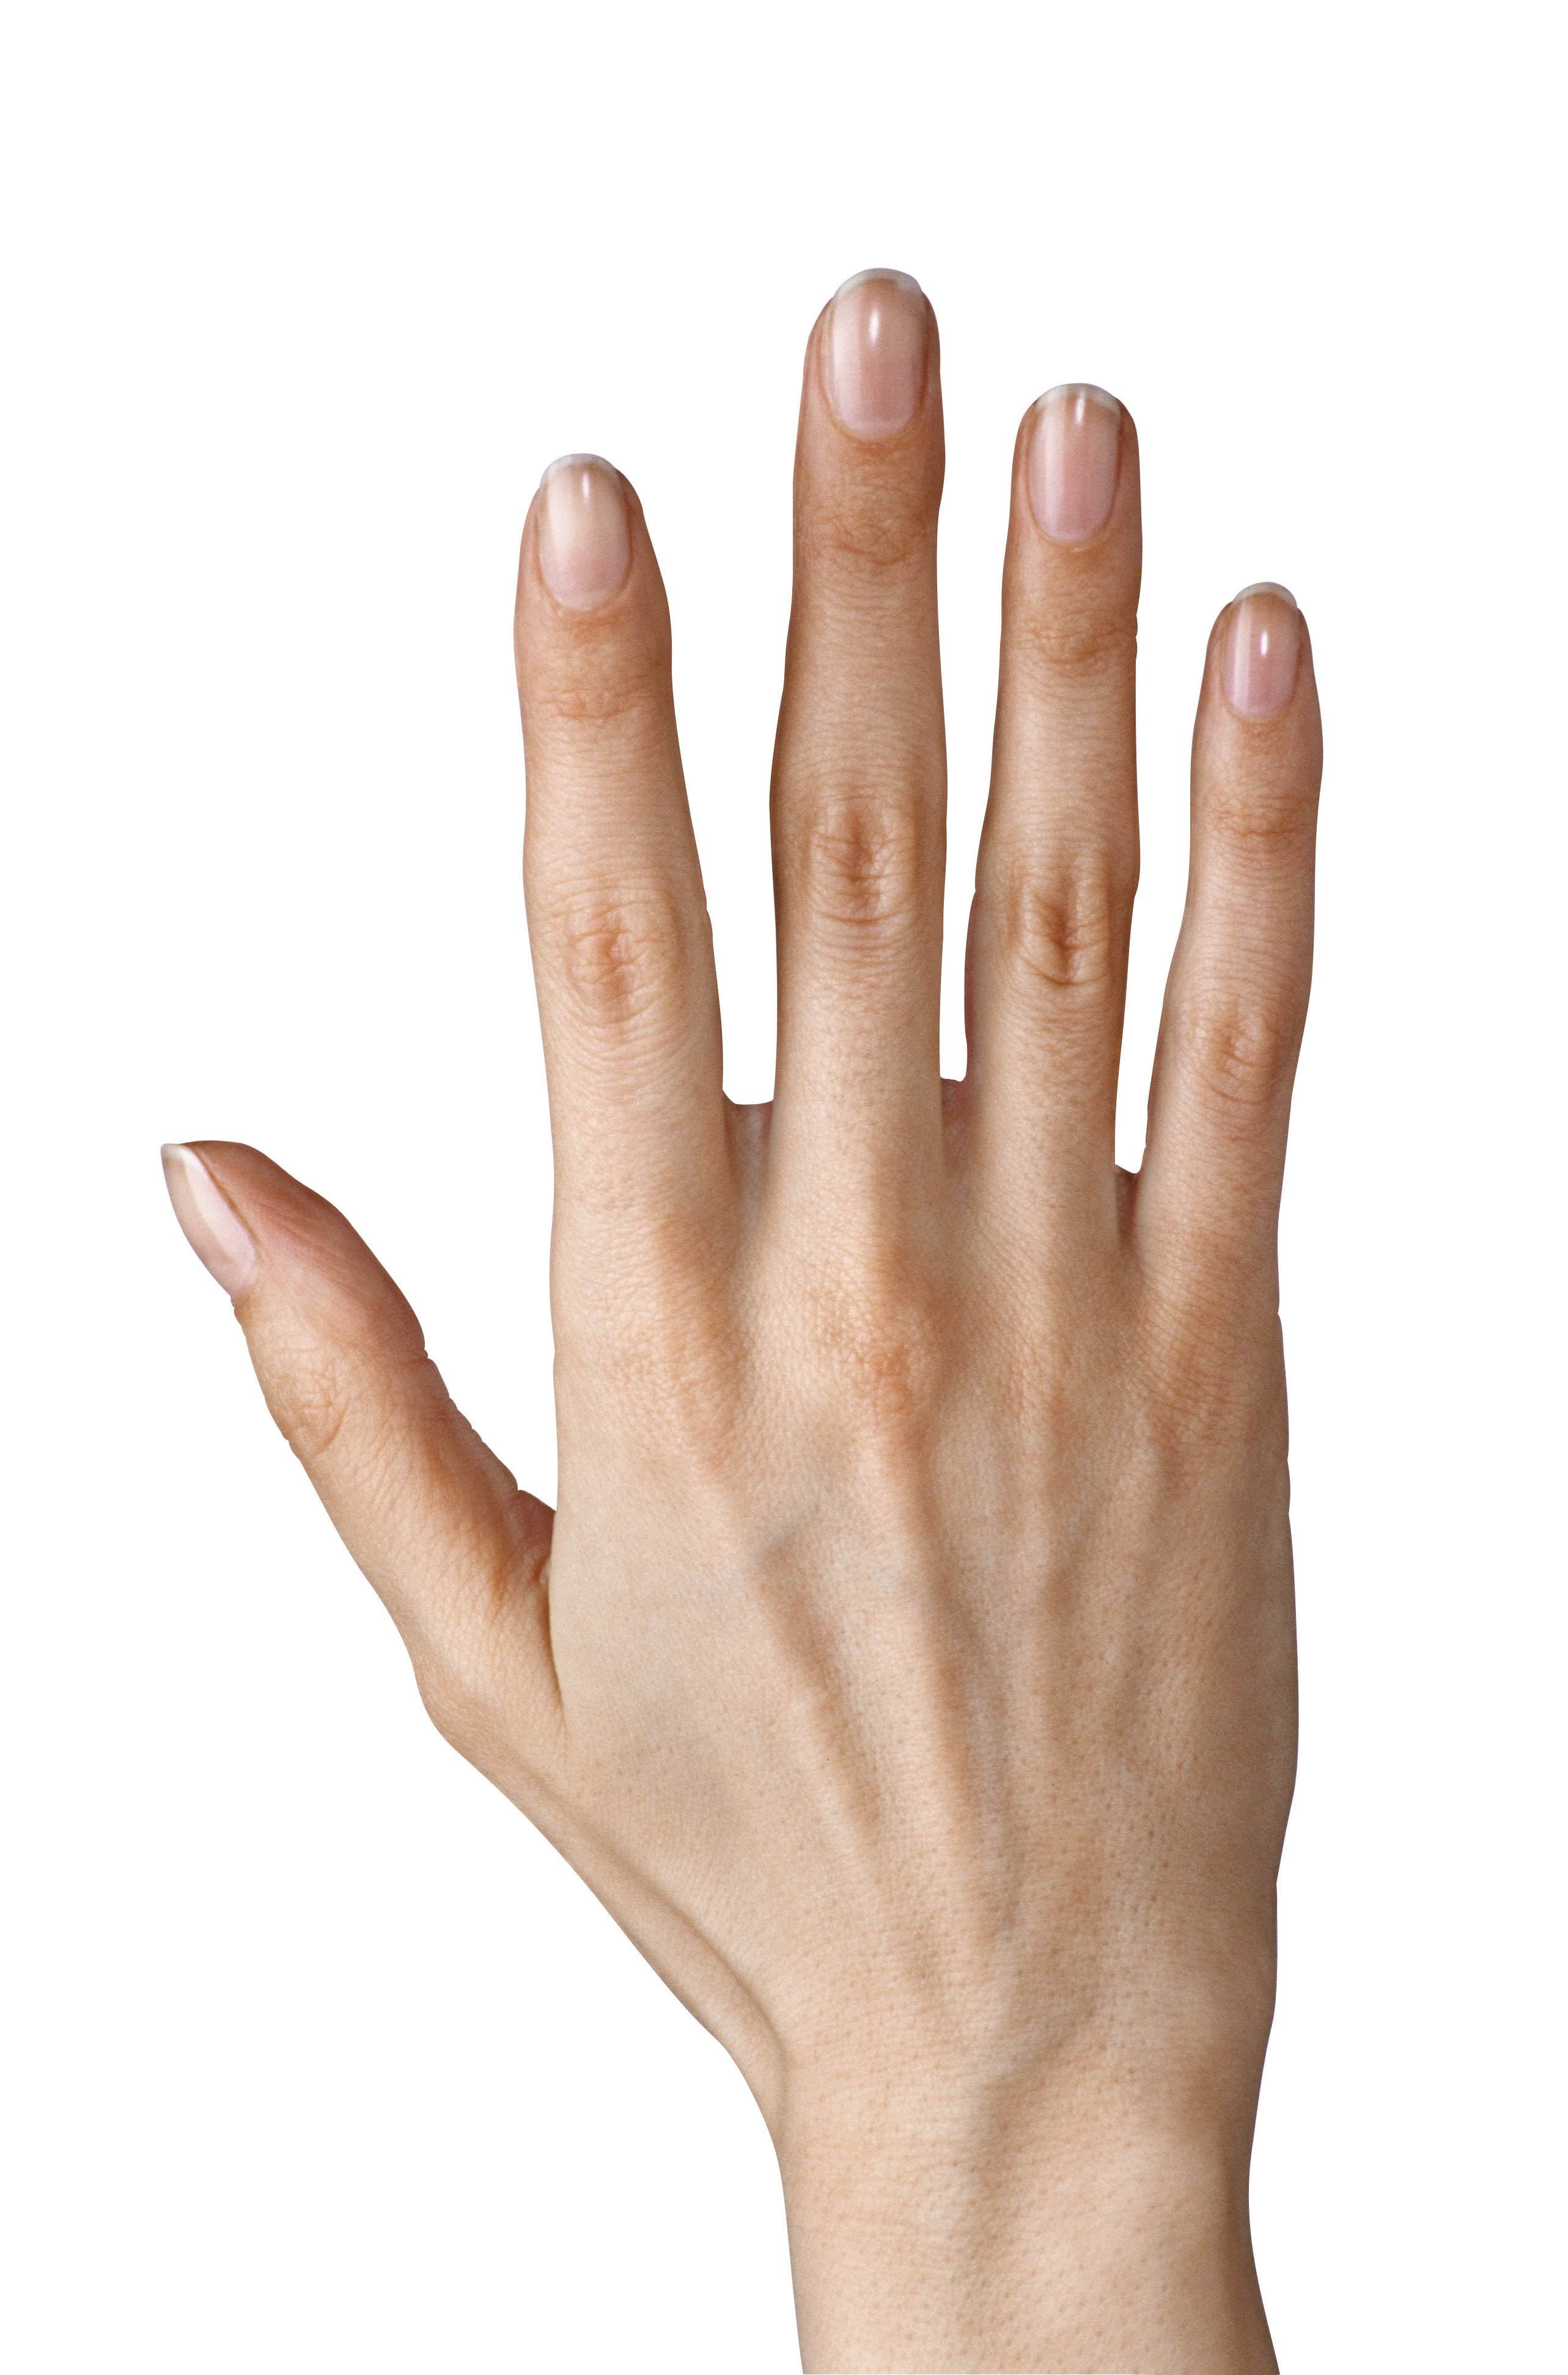 image black and white download Hand showing five png. Fingers clipart.